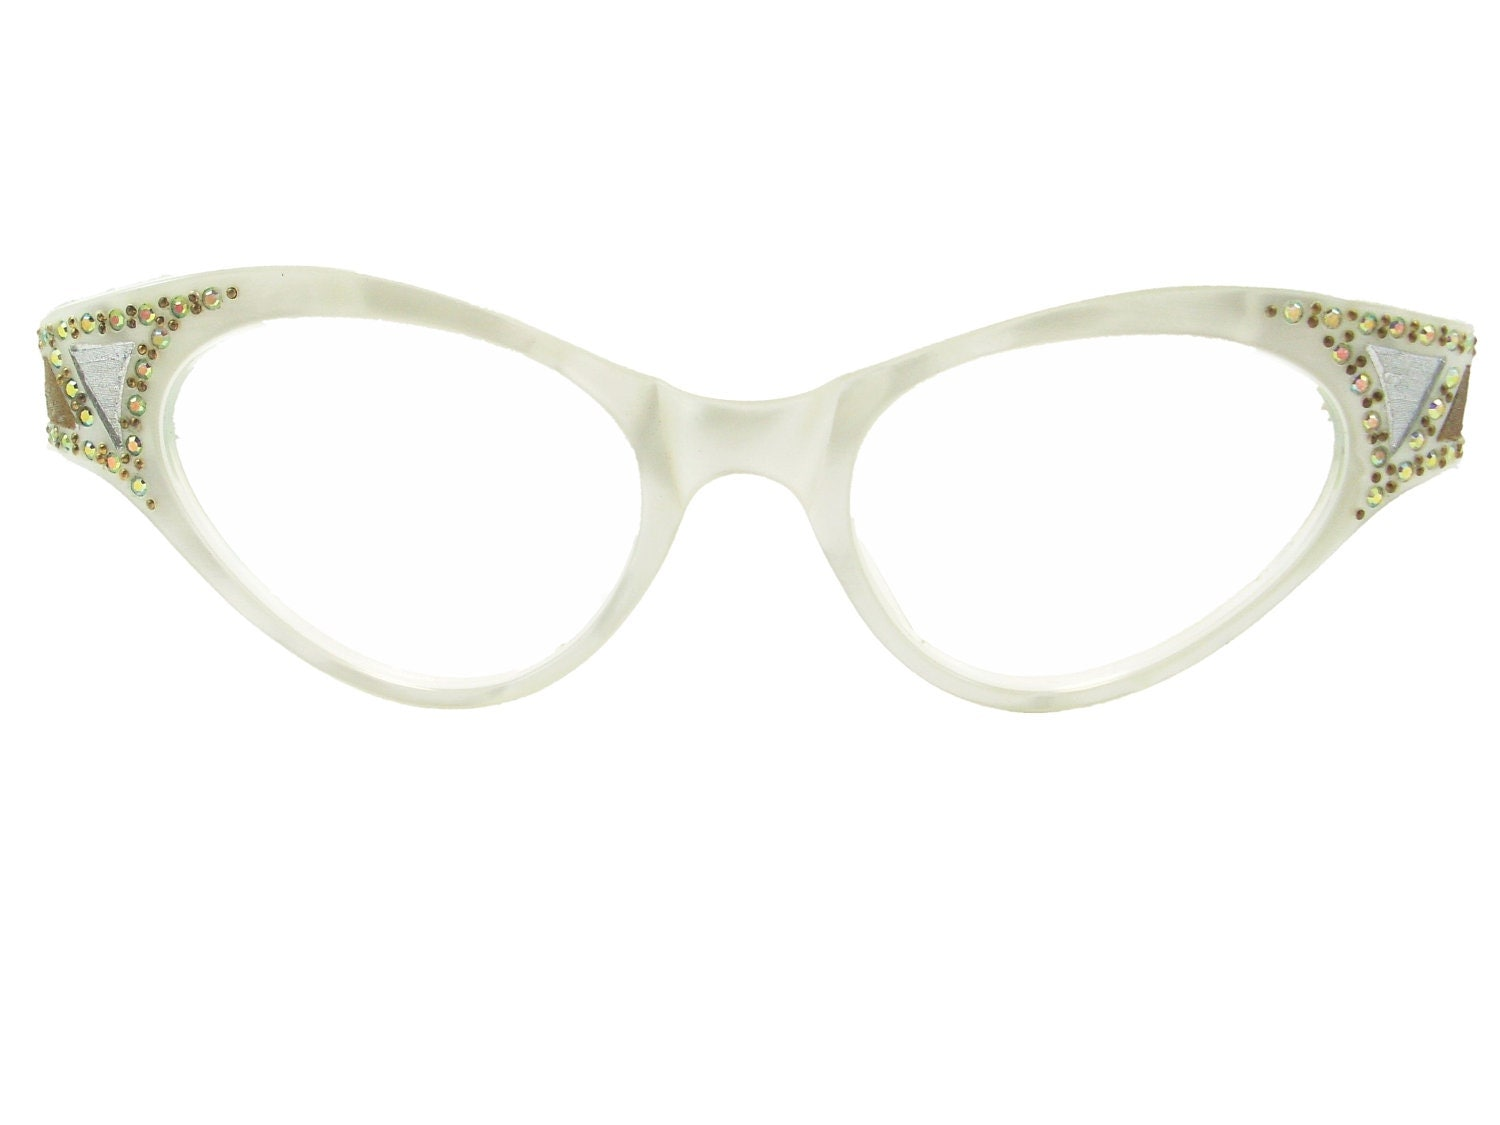 Vintage 50s Frame France Cat Eye Glasses Eyeglasses Sunglasses Glasses New Eyewear